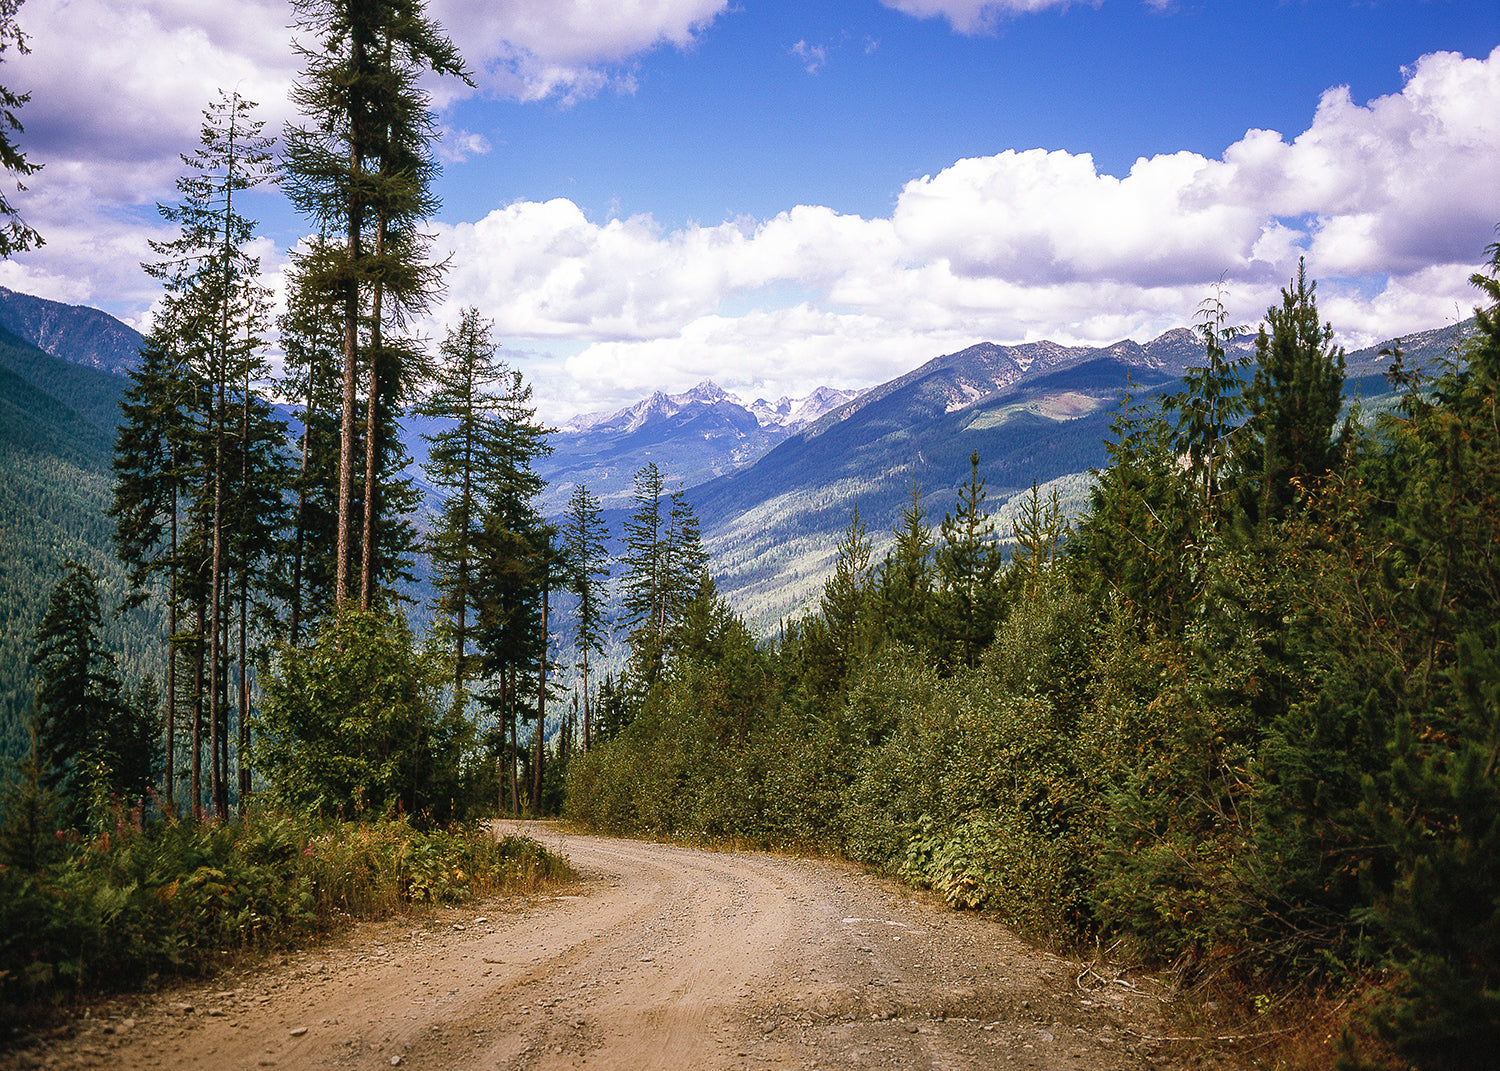 Lookout Road, Selkirk Mountains Photo Print